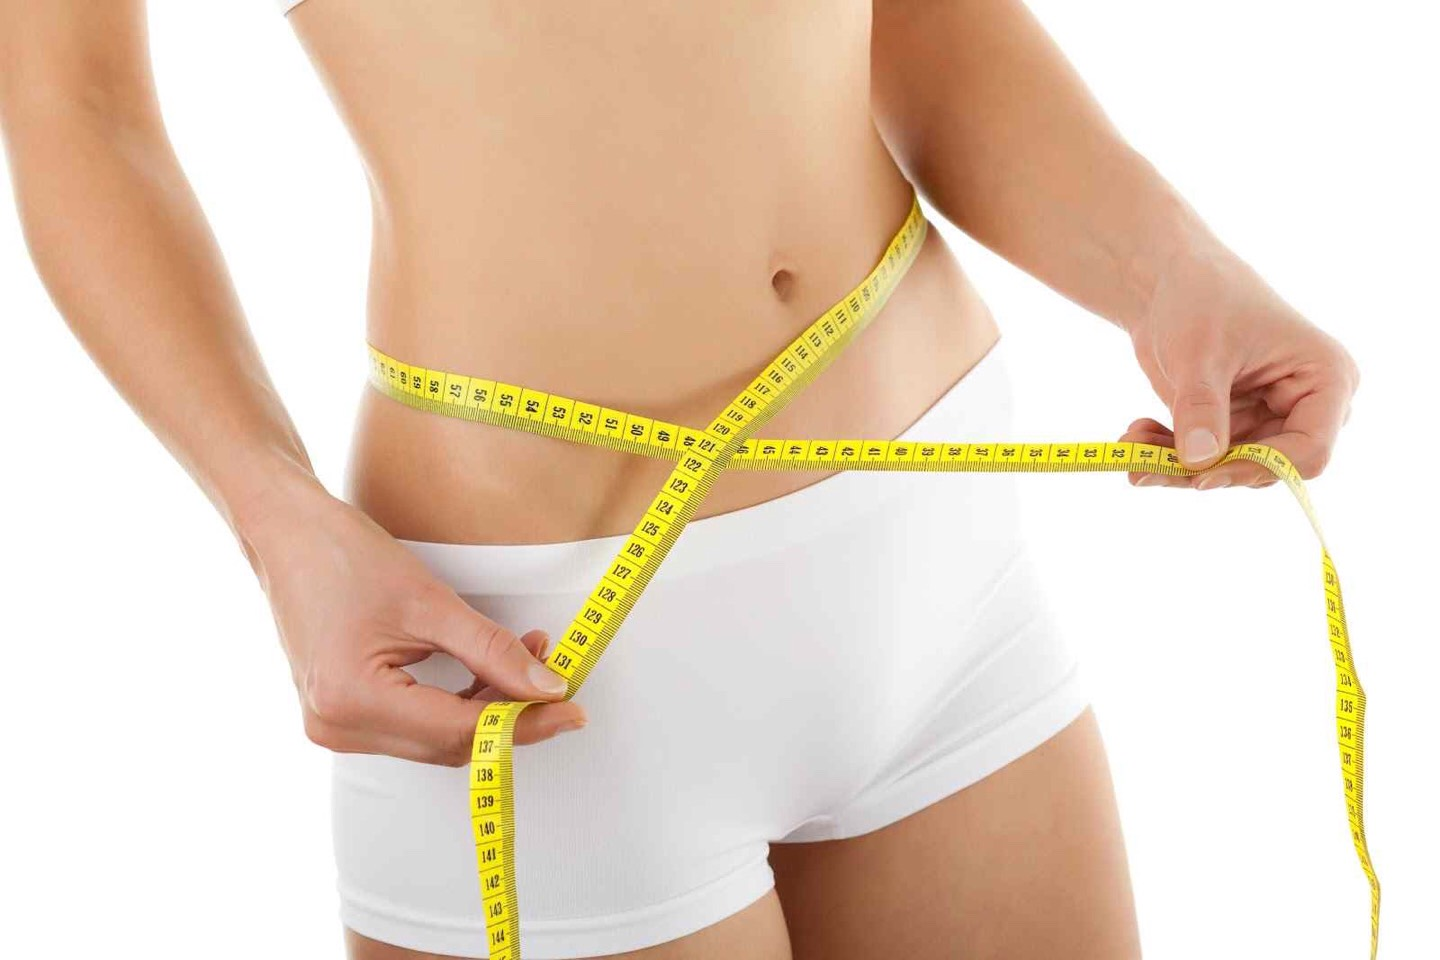 LOSE WEIGHT: adding ¼ teaspoon of baking soda to 1 gallon of water raises the pH of the water to 7.0, drinking this flushes all toxins and acids, Total body weight in pounds, divided by one half, equals the amount of water needed daily in ounces, (example: 100 pounds divided by 2 = 50 ounces a day)